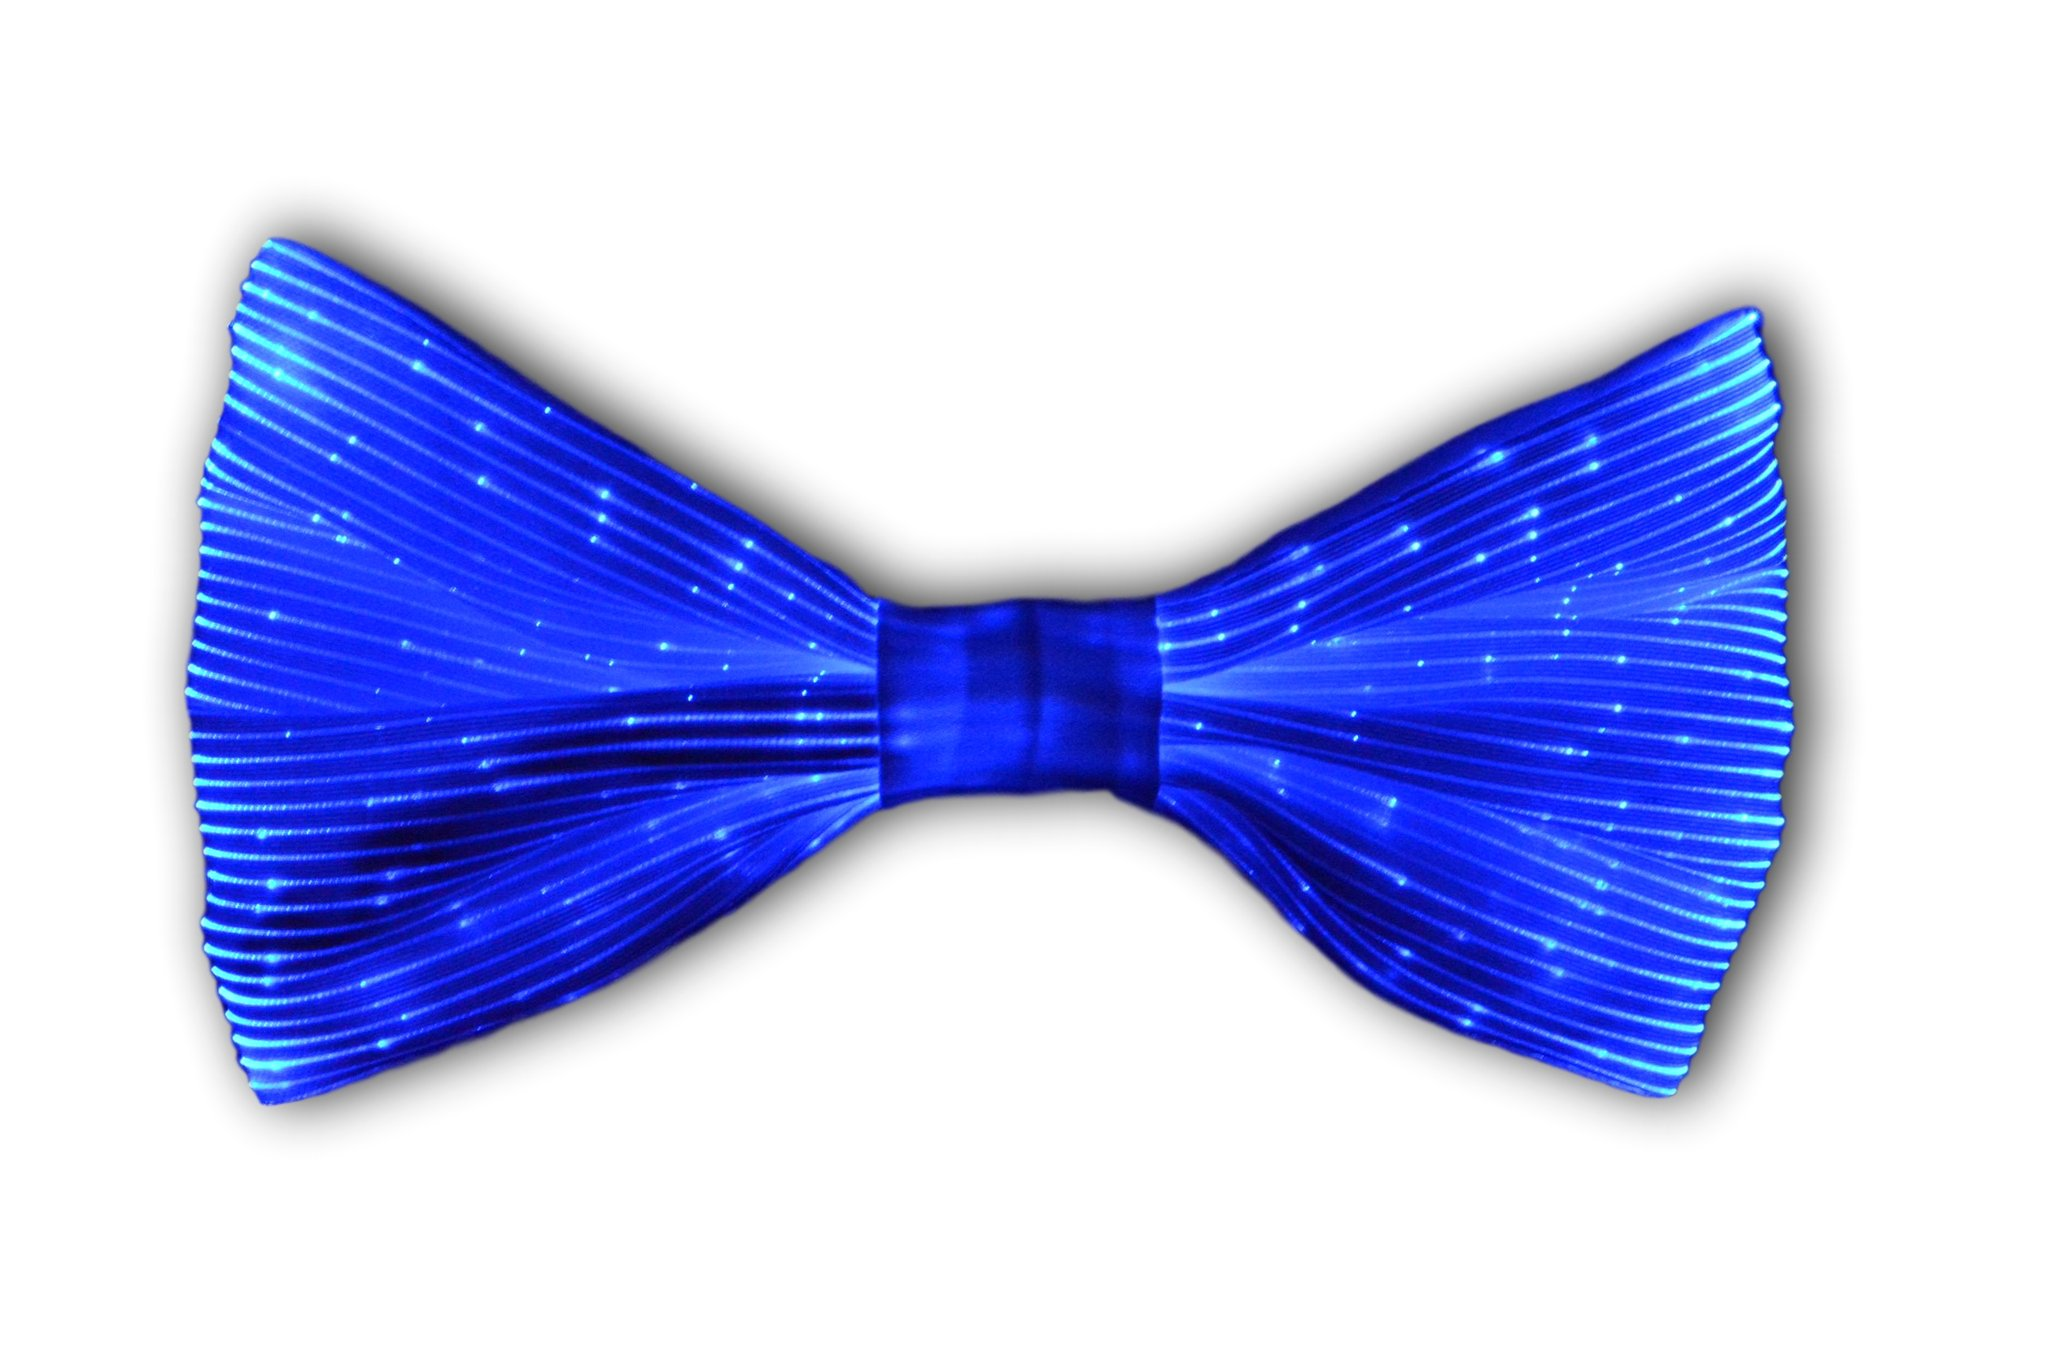 light up bow tie, led bow tie, led flashing bow tie,luminescent bow tie